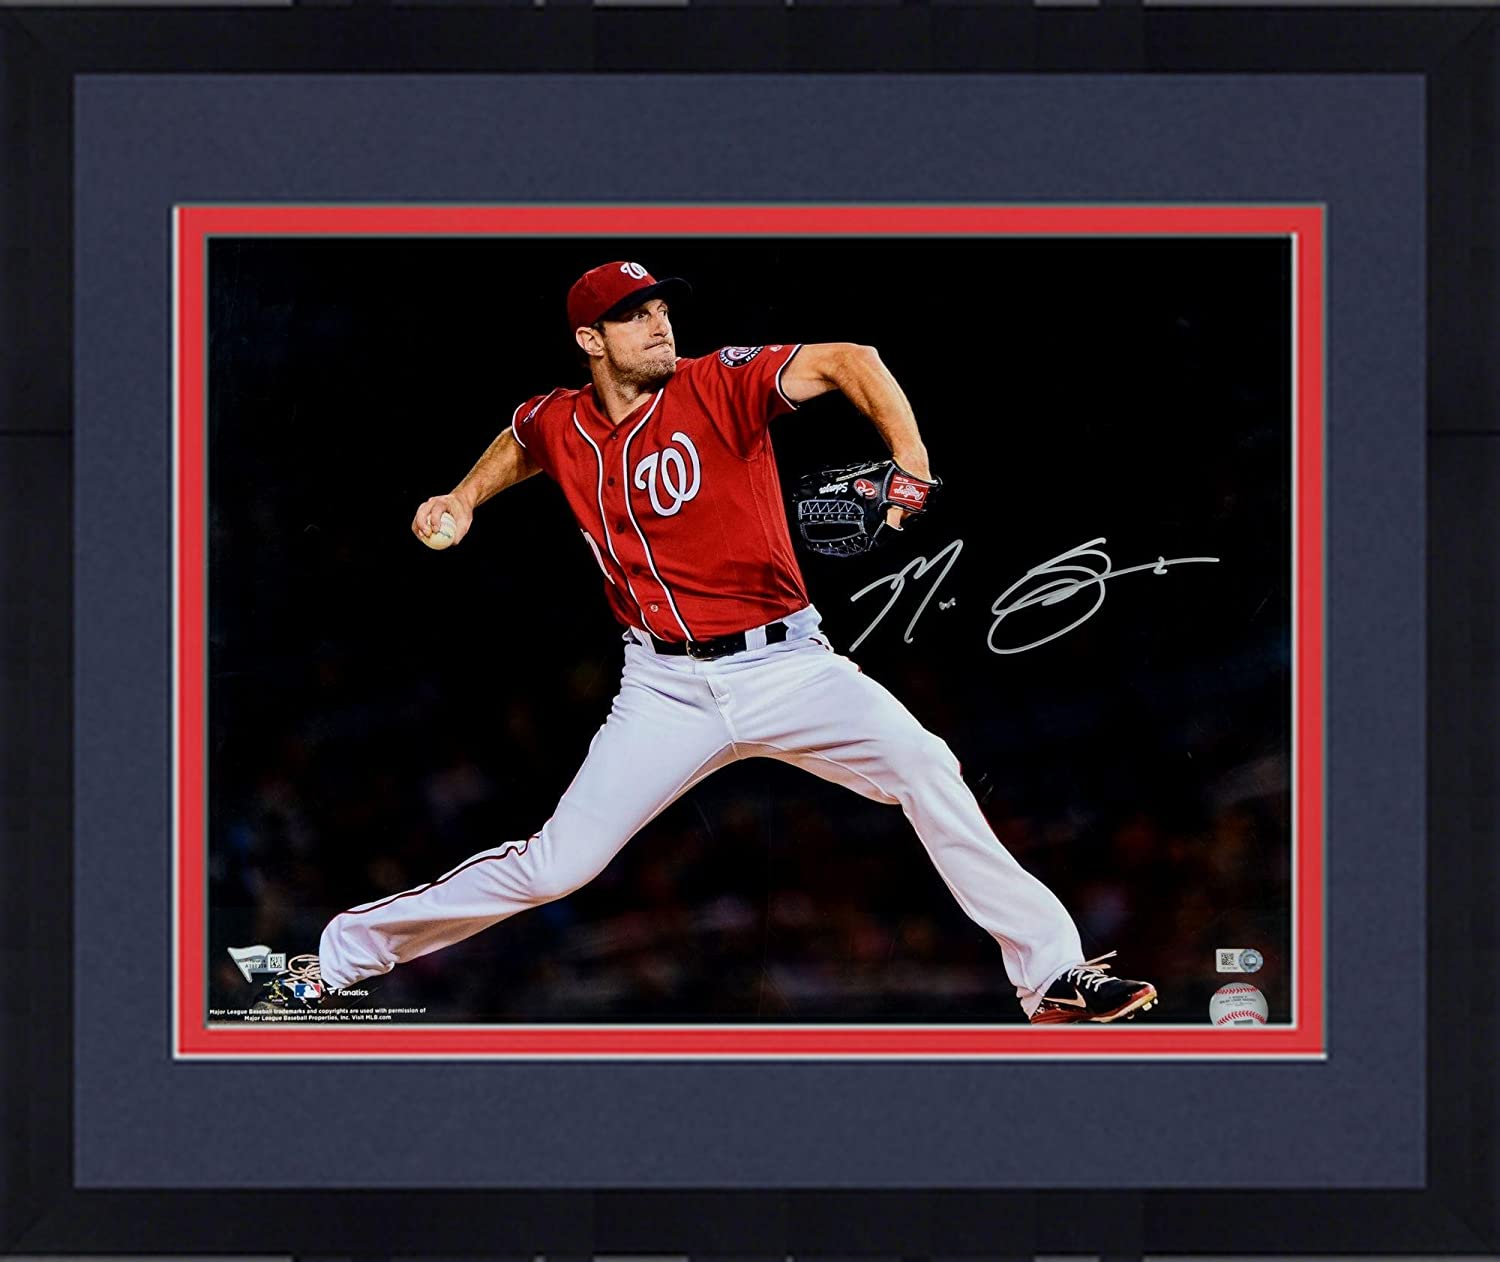 Fanatics Authentic Certified Framed Max Scherzer Washington Nationals Autographed 16 x 20 Red Pitching Photograph